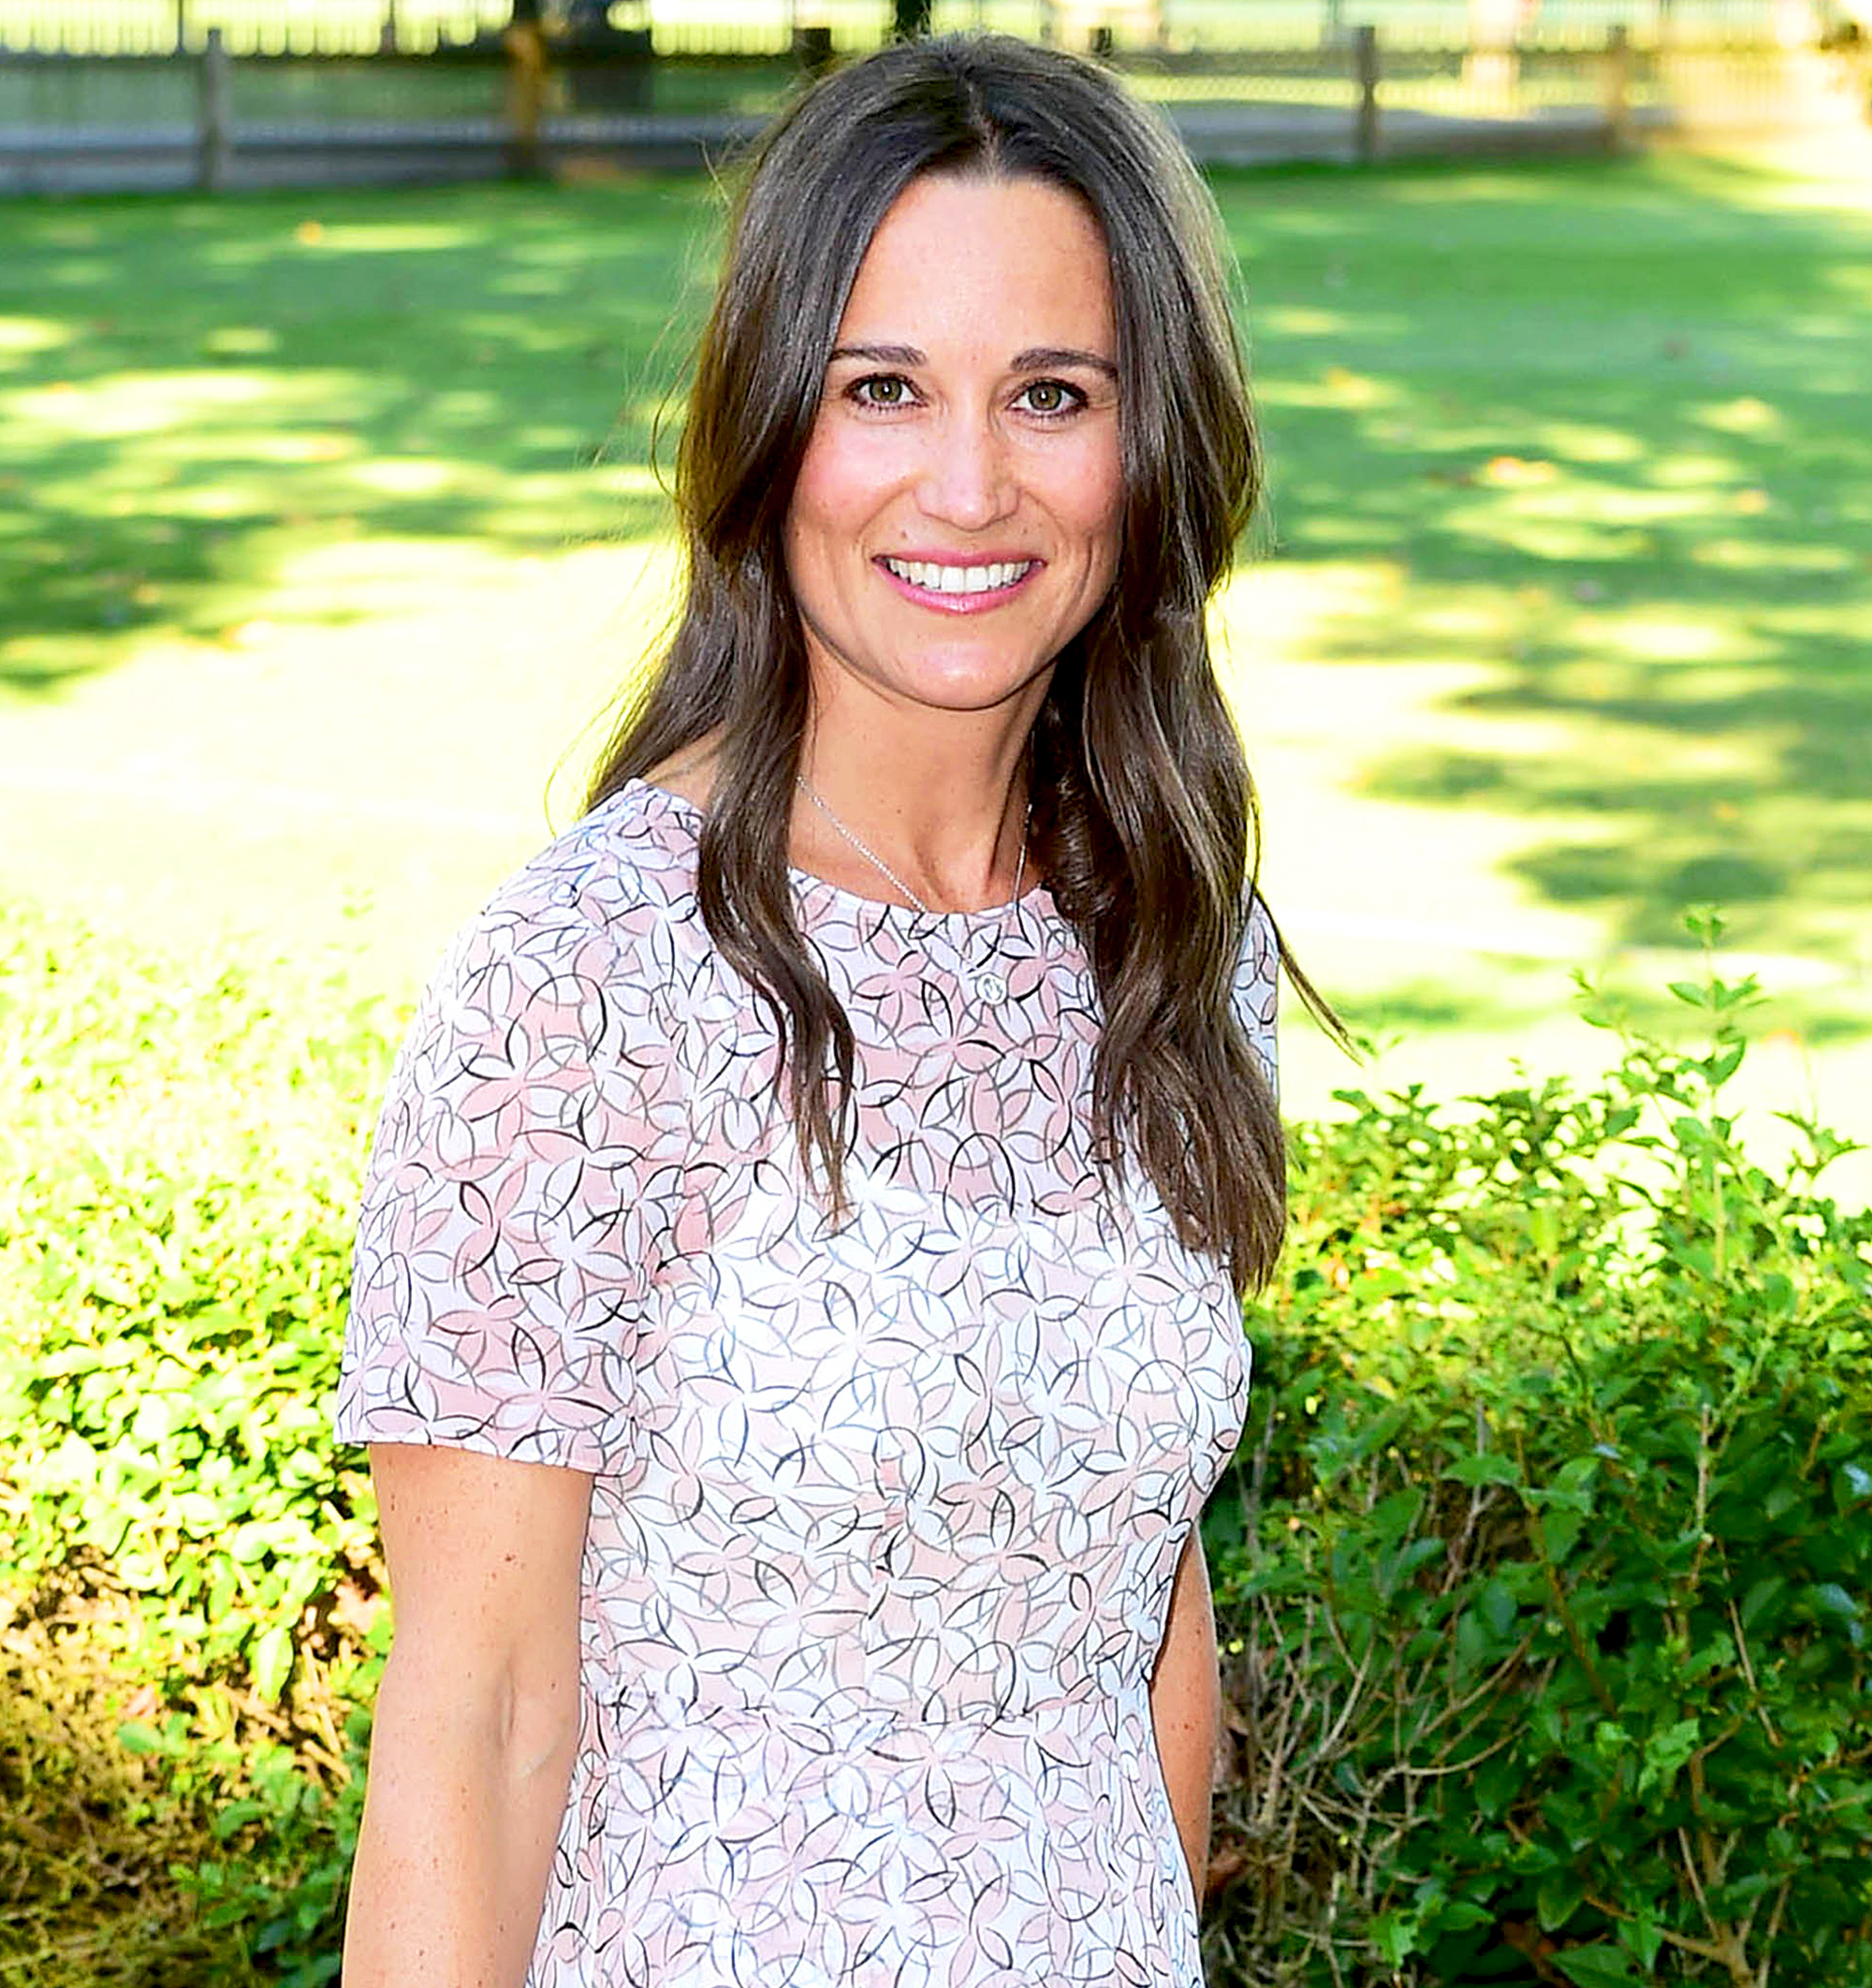 Pippa Middleton Announces Her Pregnancy